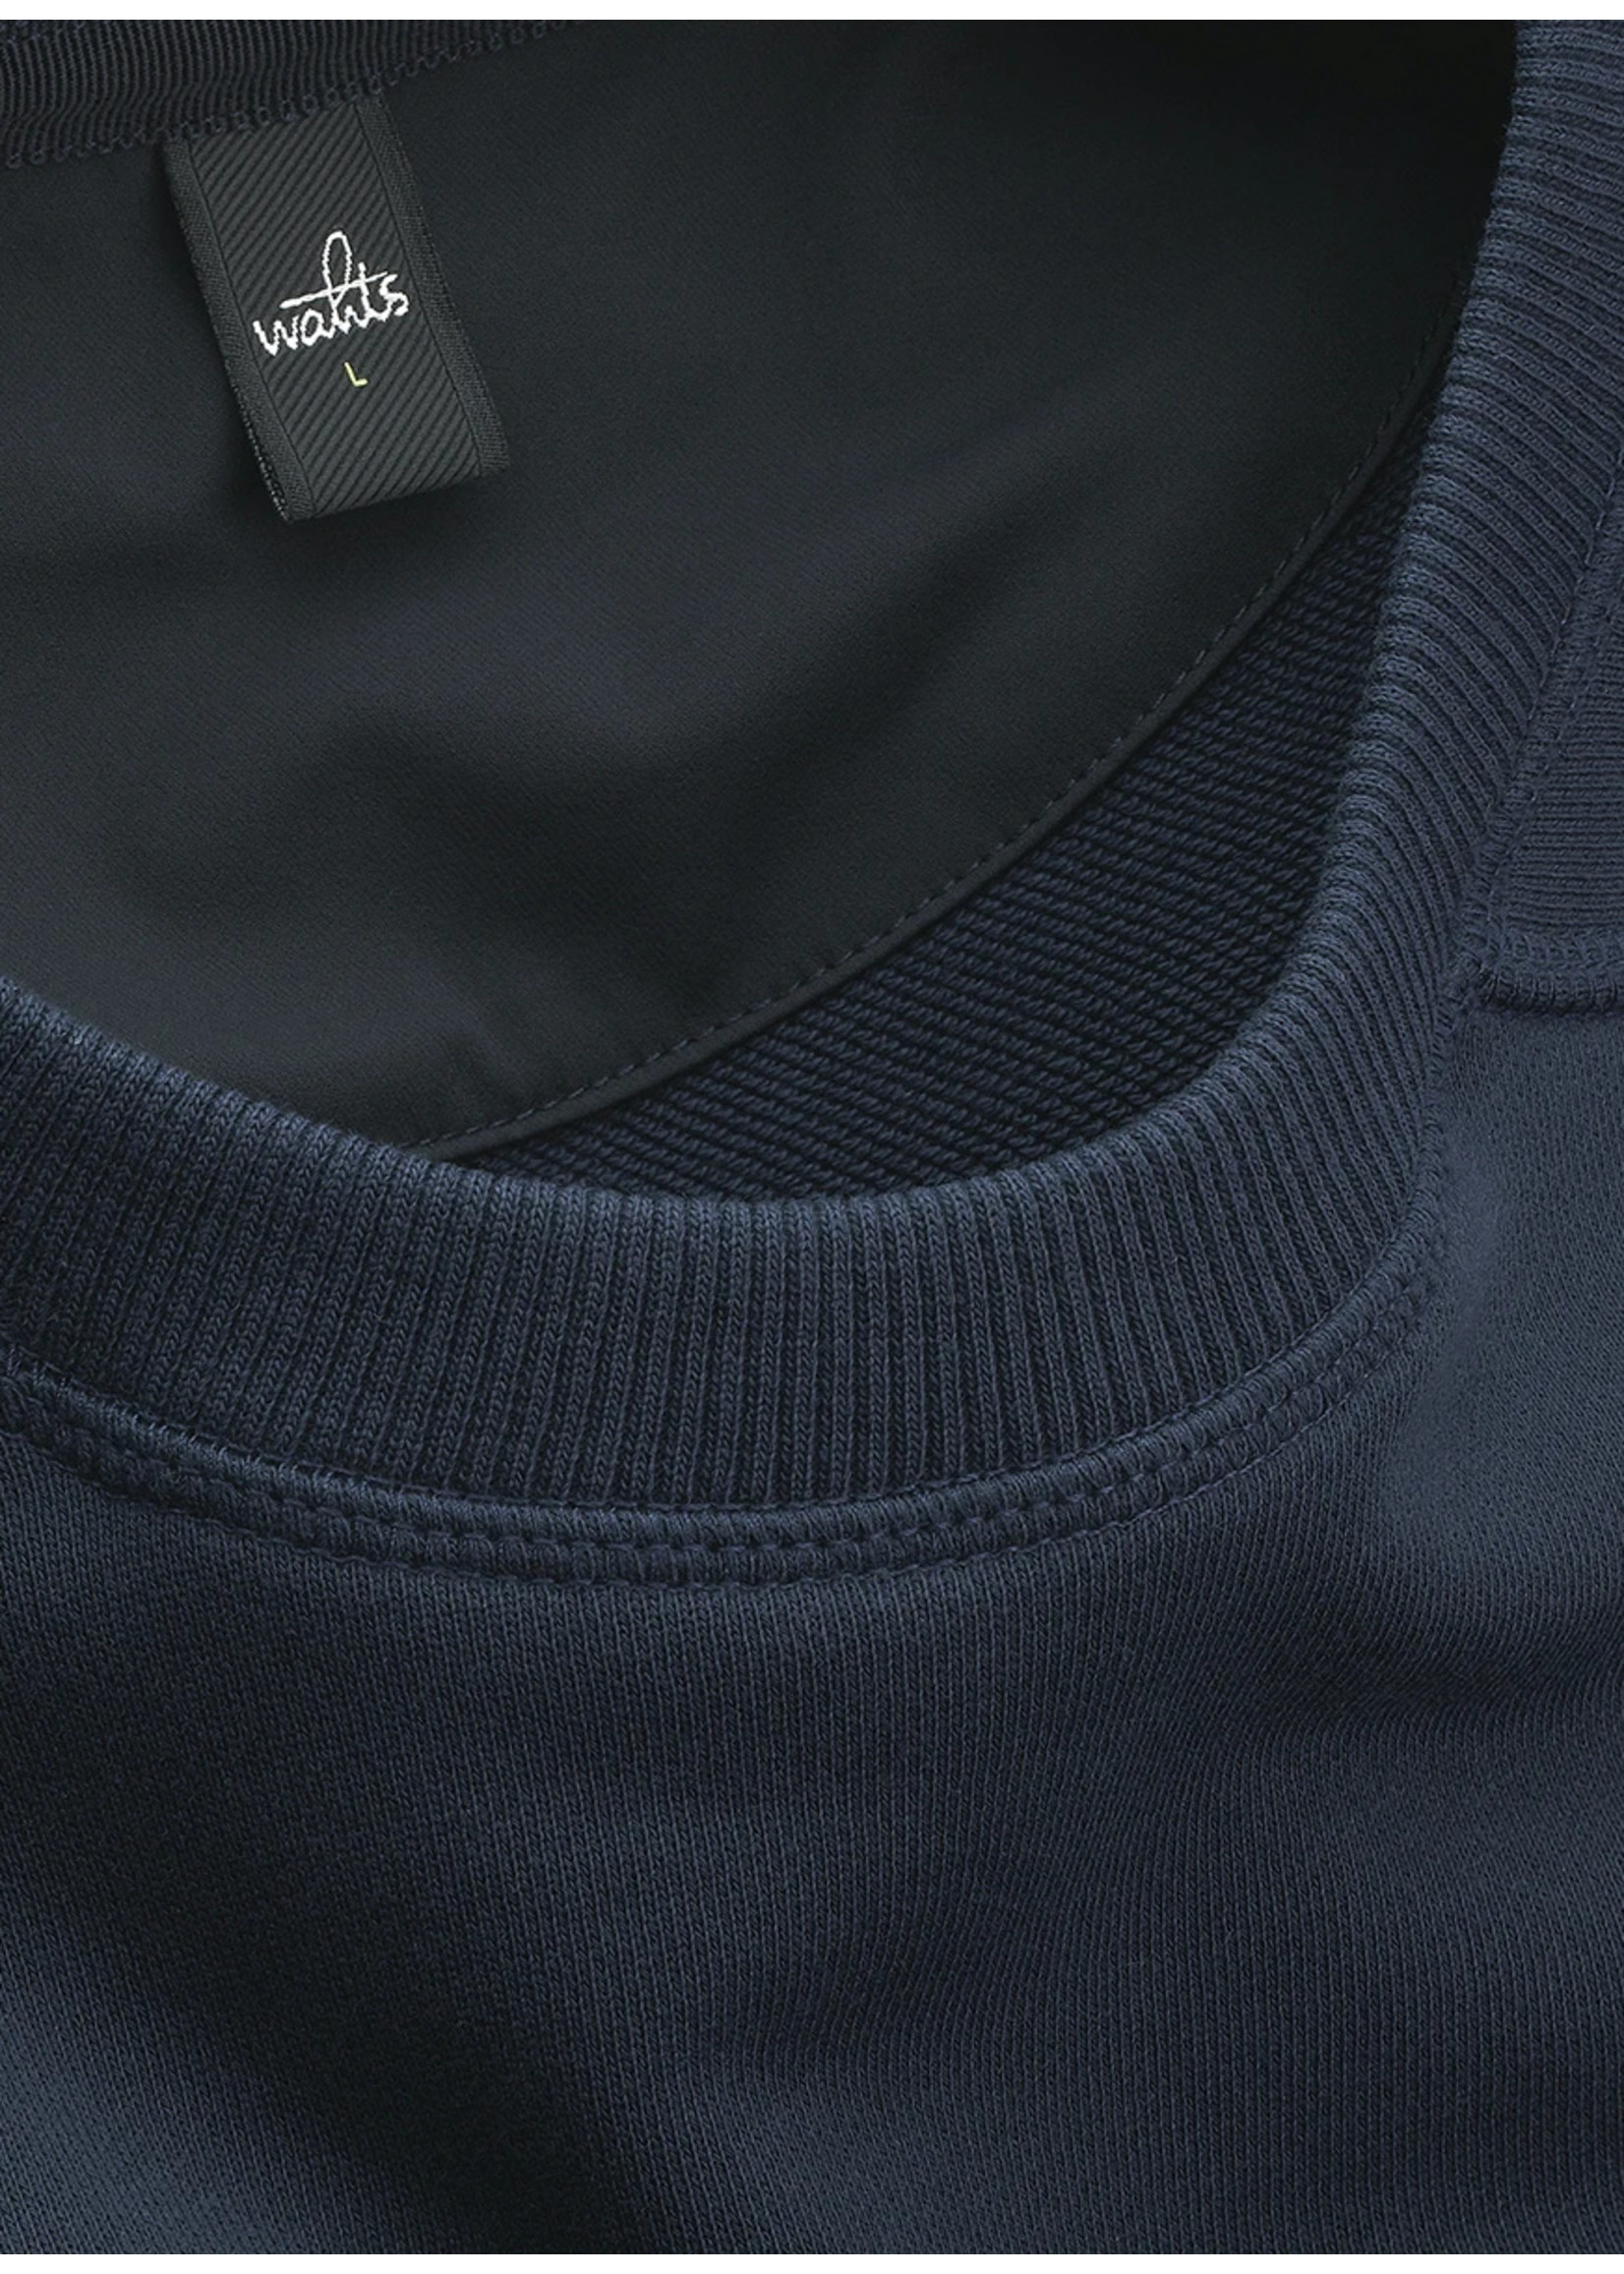 Wahts Moore crewneck sweater navy blue